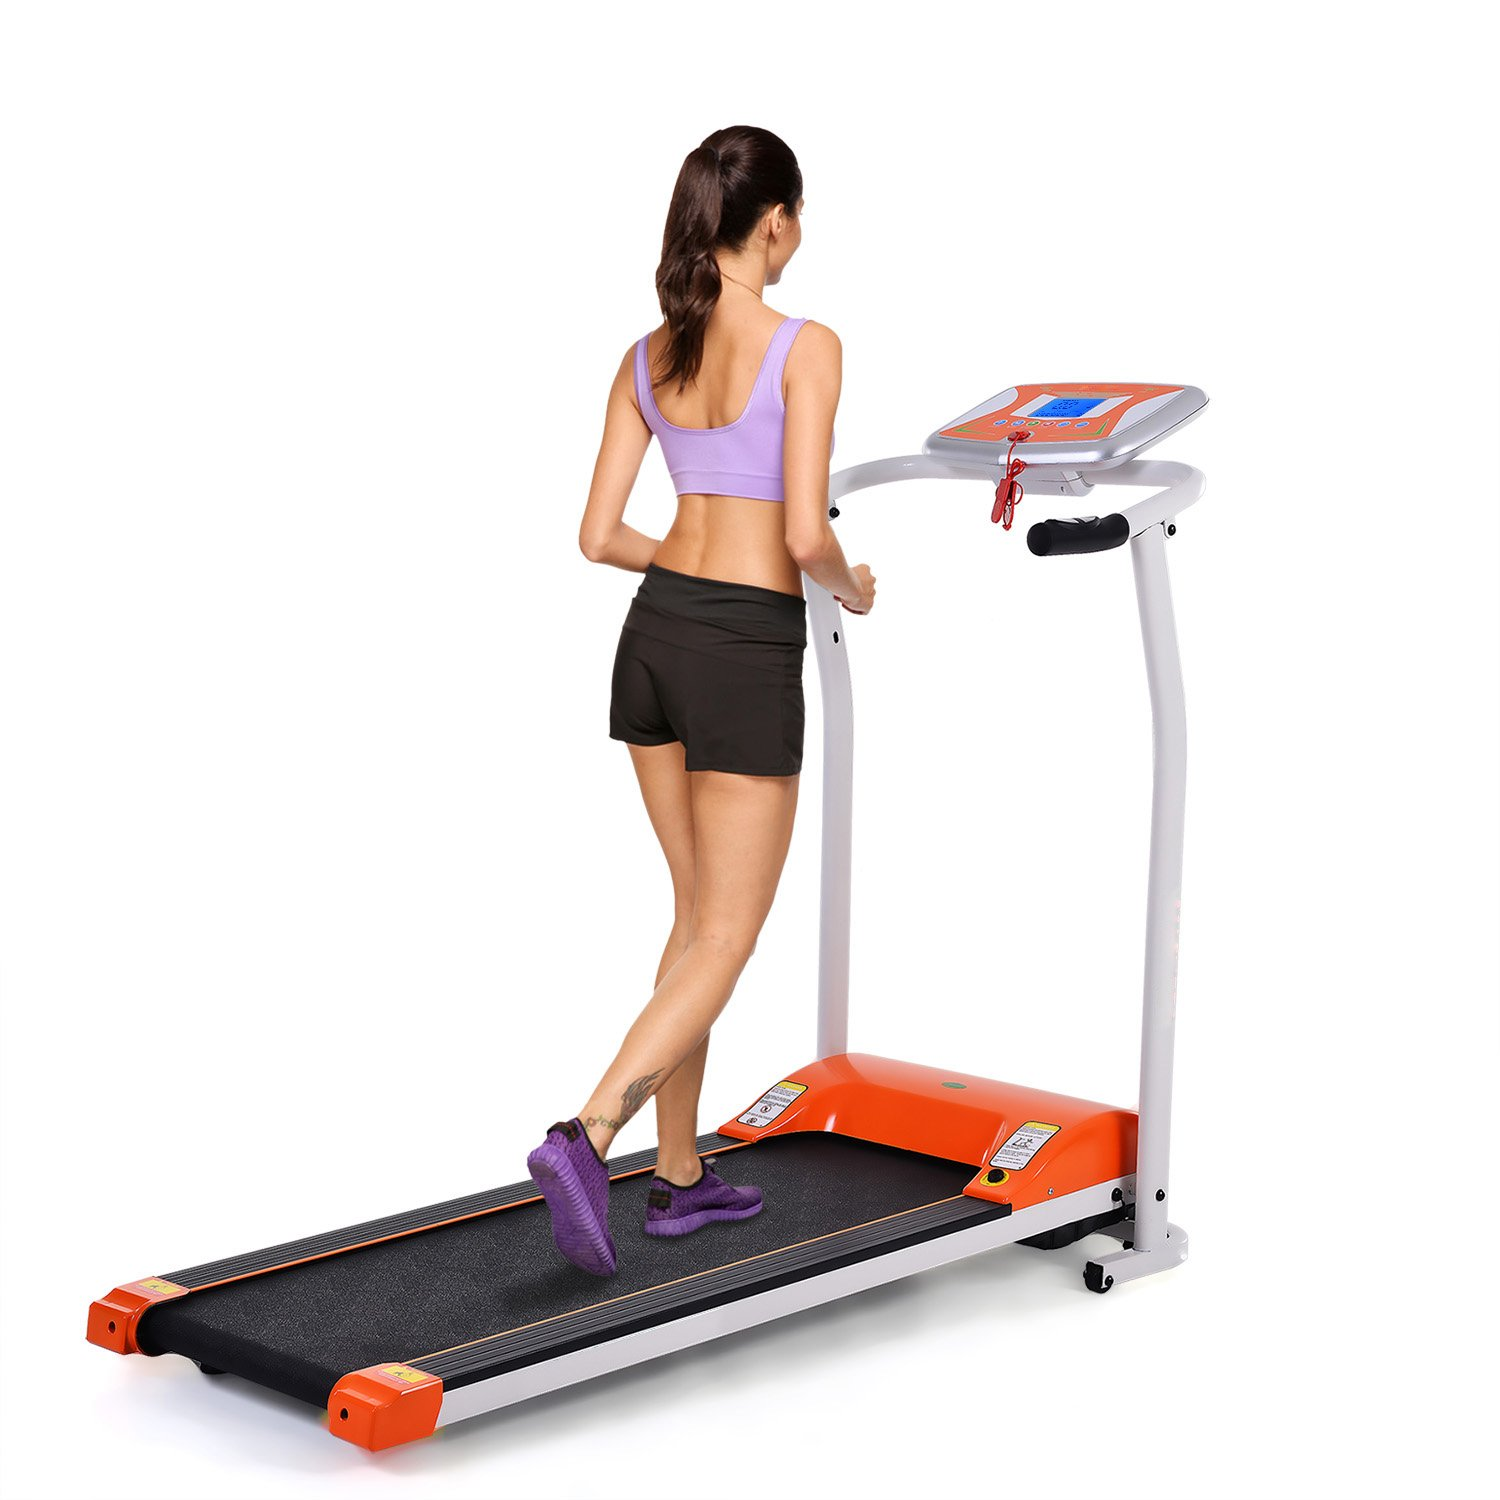 Yiilove Folding Treadmill Electric Motorized Power Fitness Running Machine for Home & Gym(US Stock) (1.5 HP - Orange)